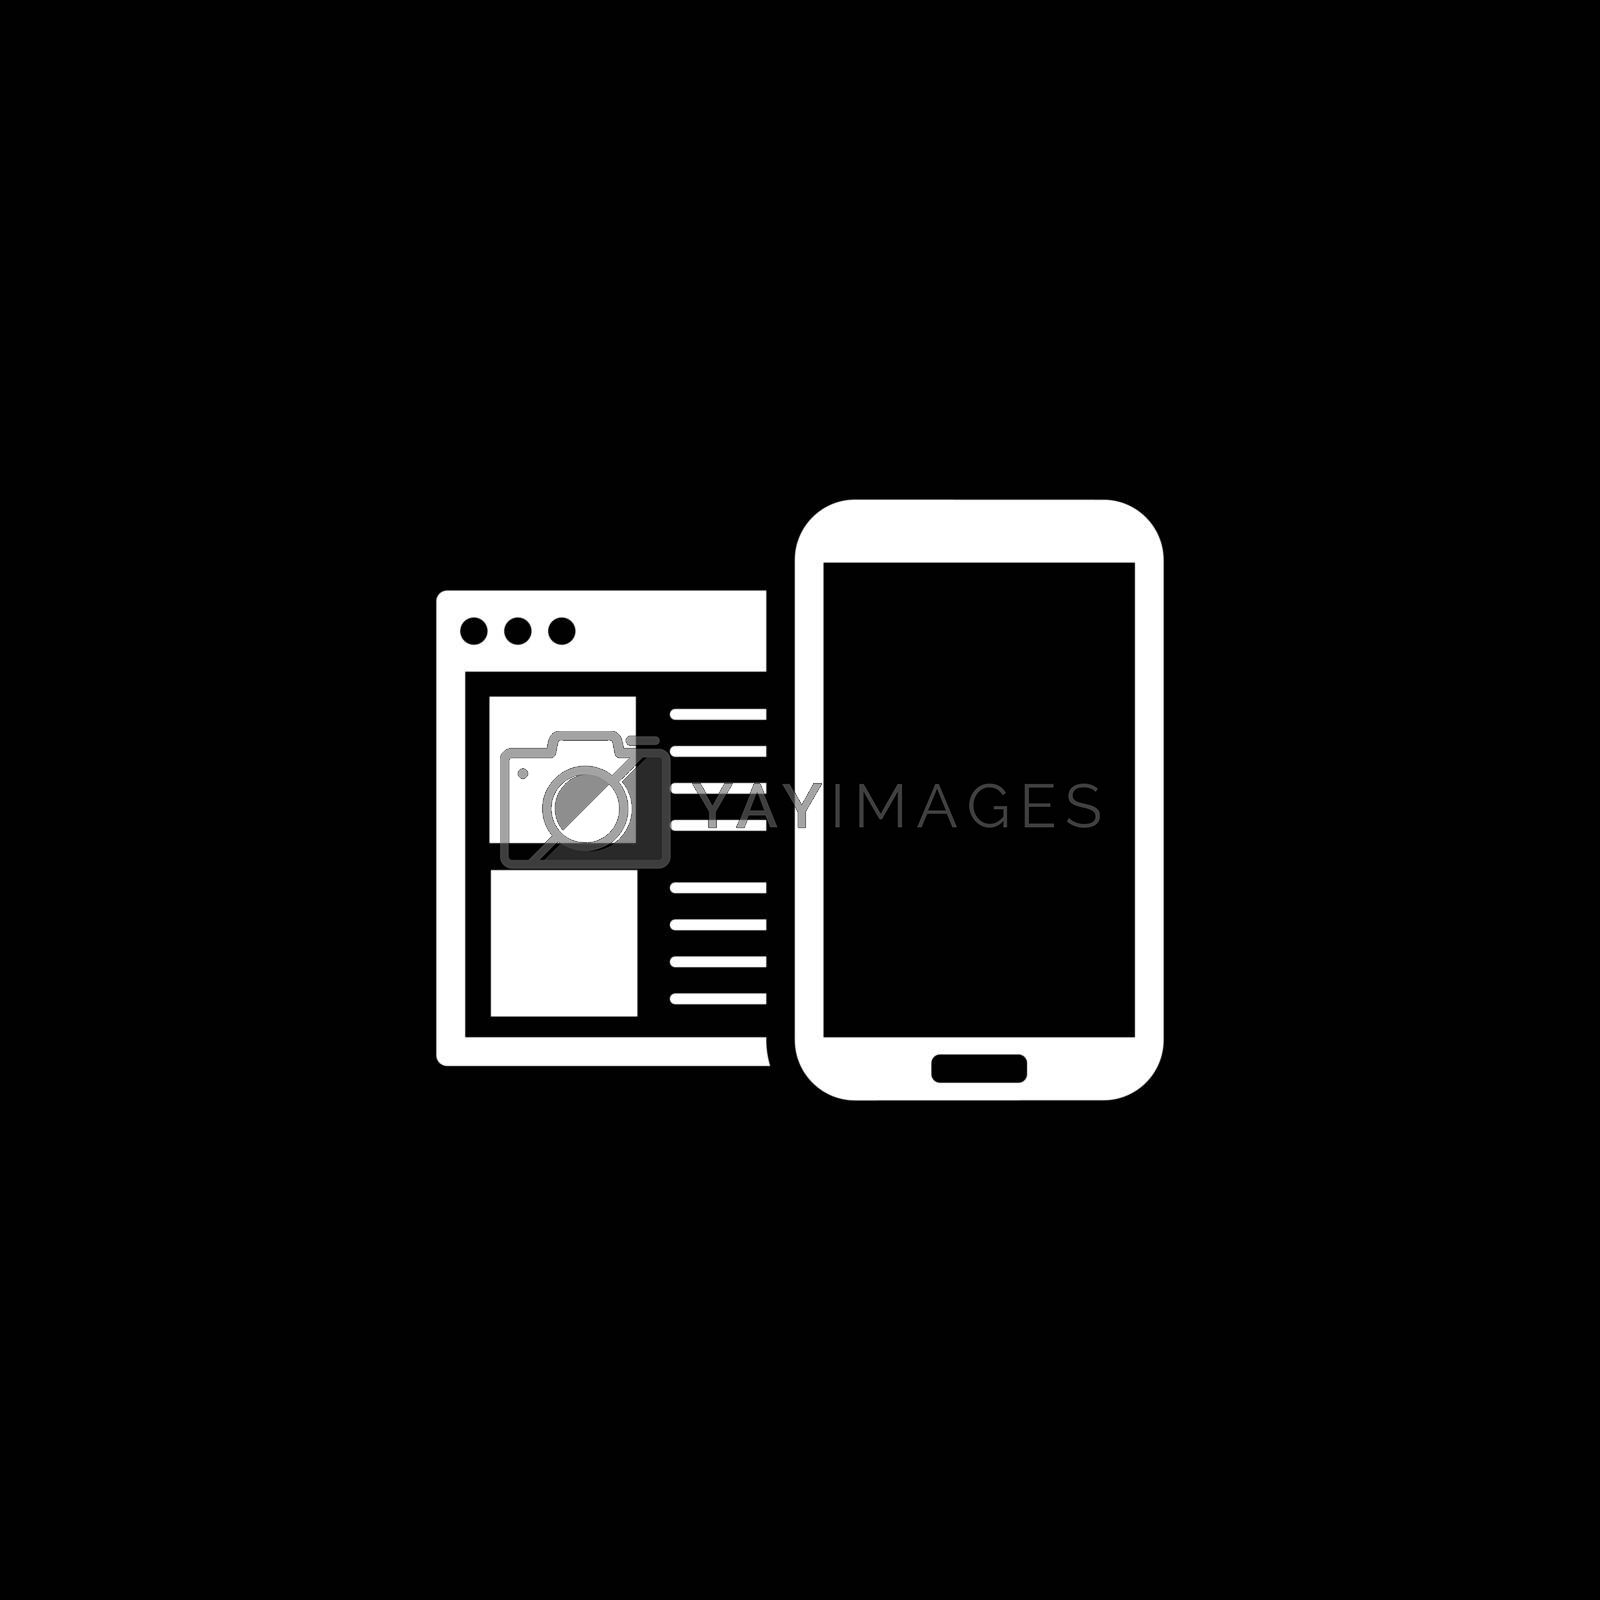 Mobile Surfing Icon. Flat Design. Mobile Devices and Services Concept. Isolated Illustration.